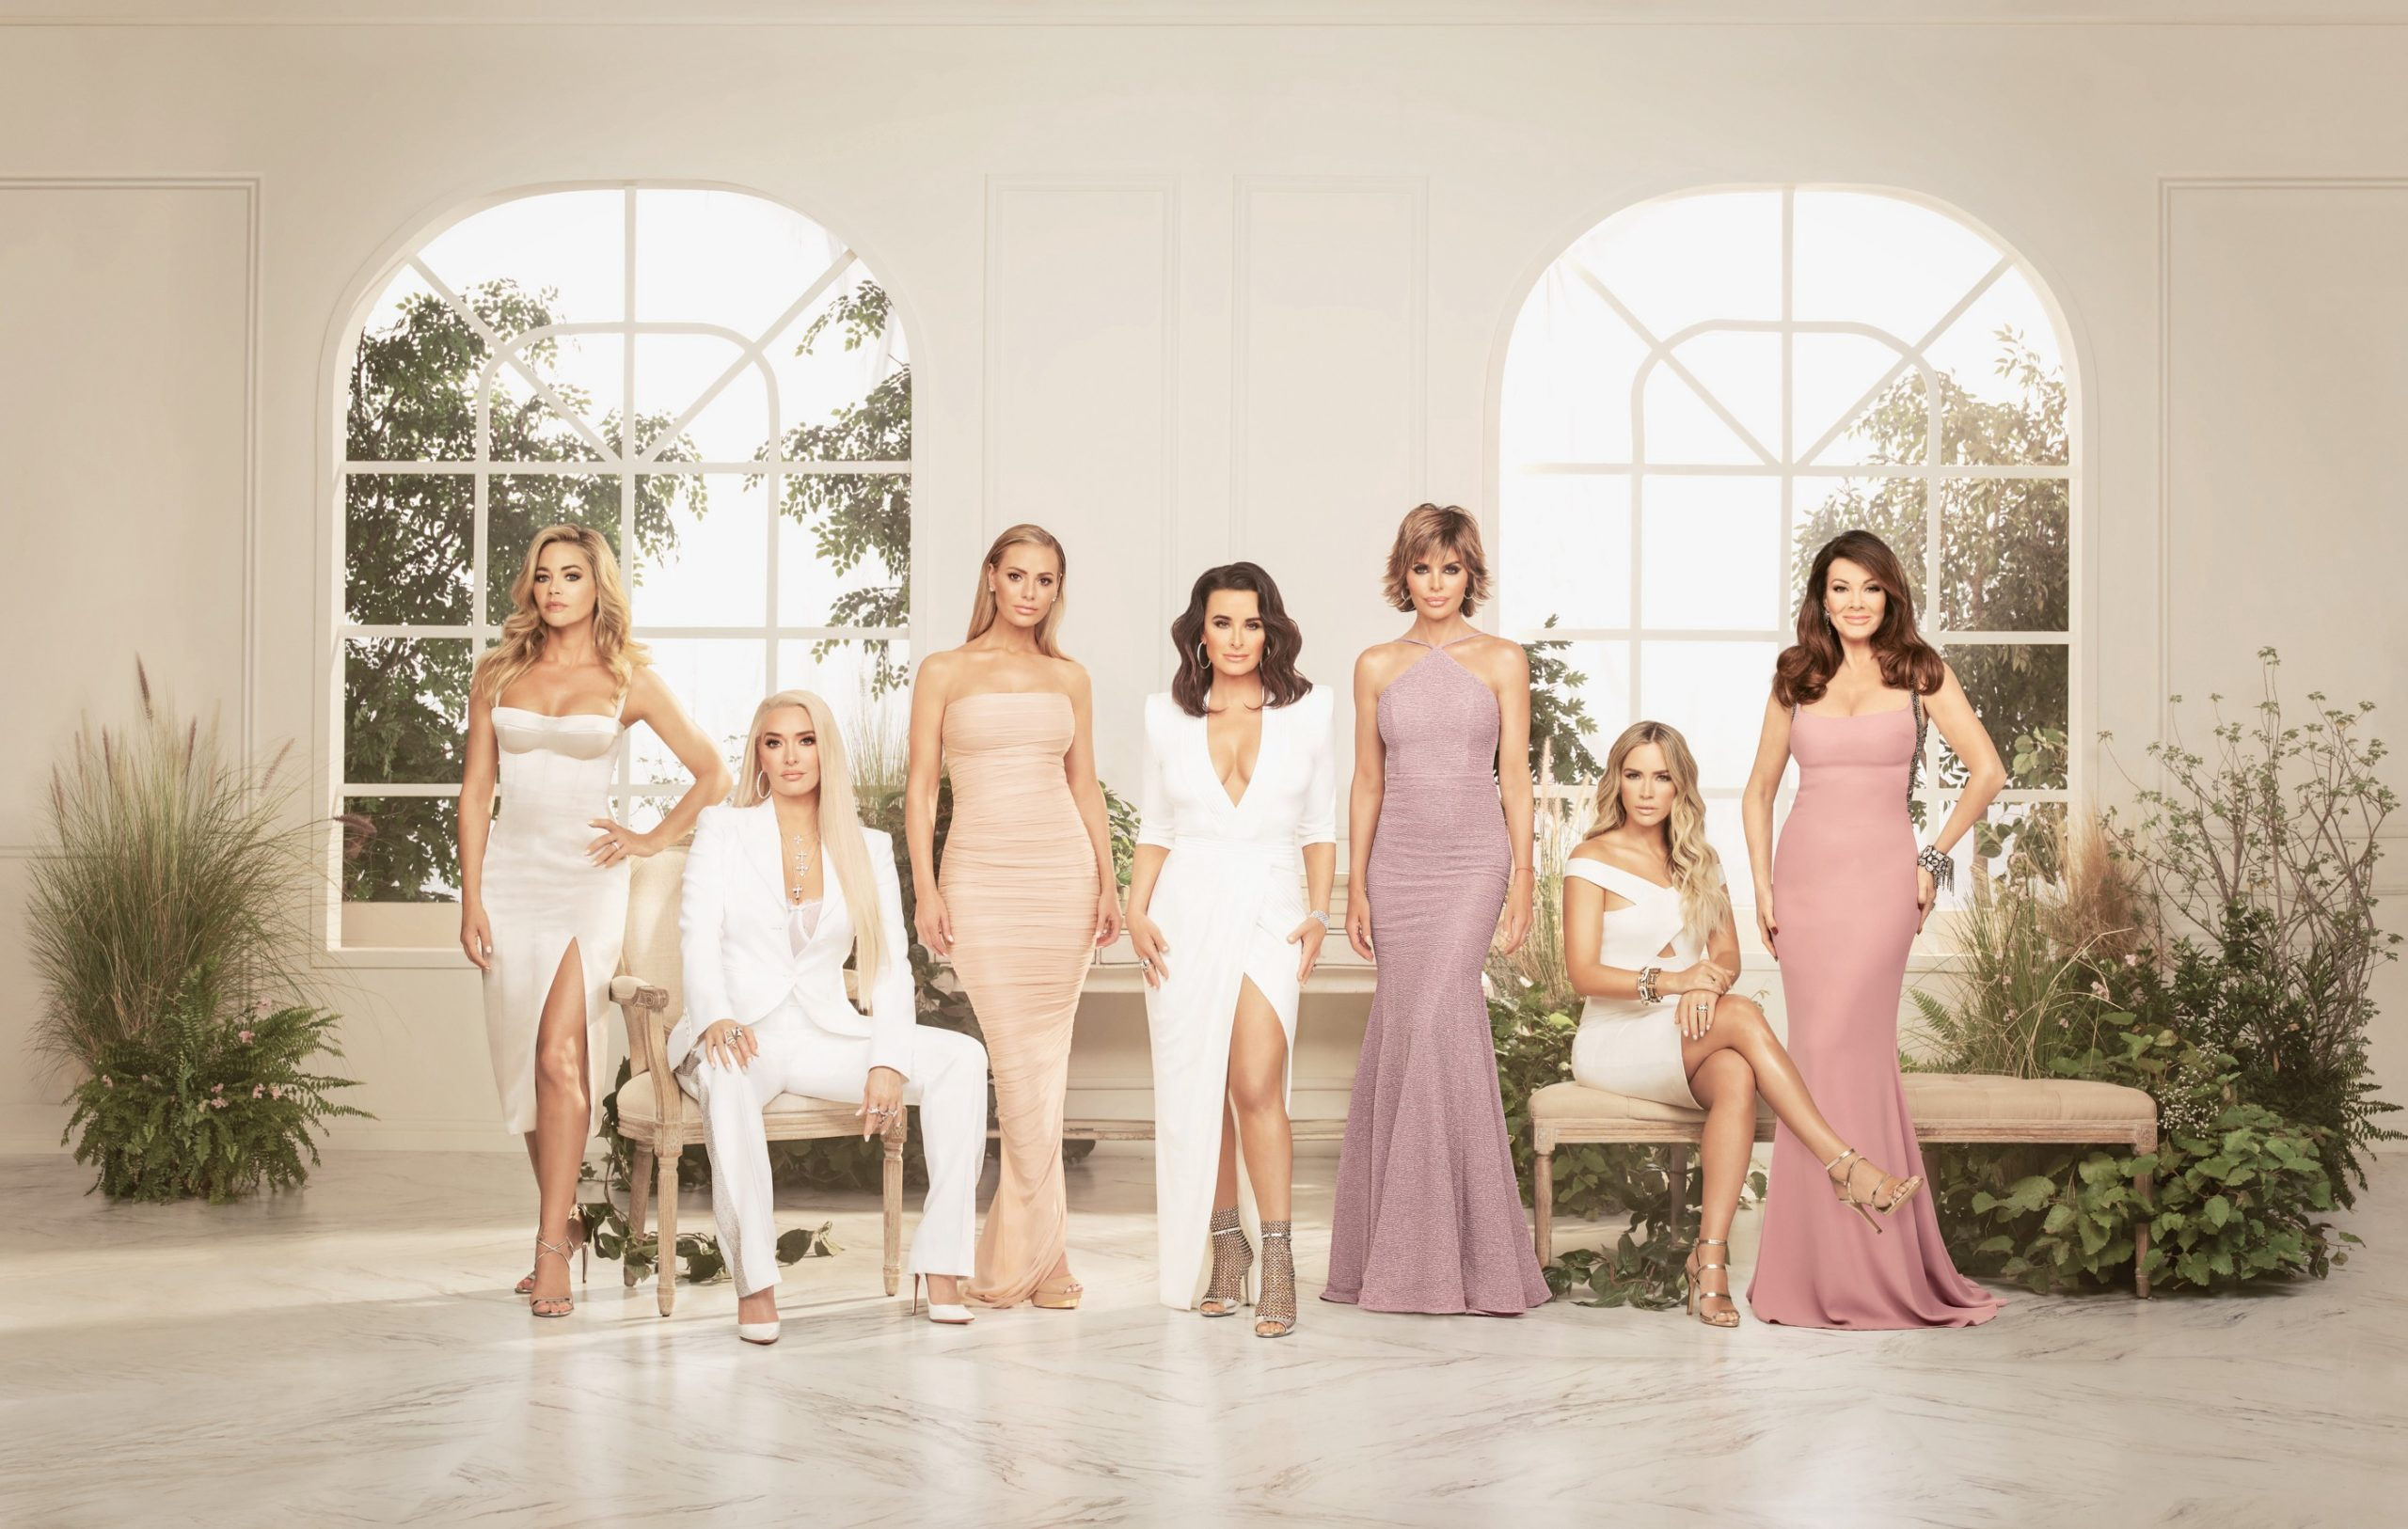 The Real Housewives of Beverly Hills Season 10 Cast